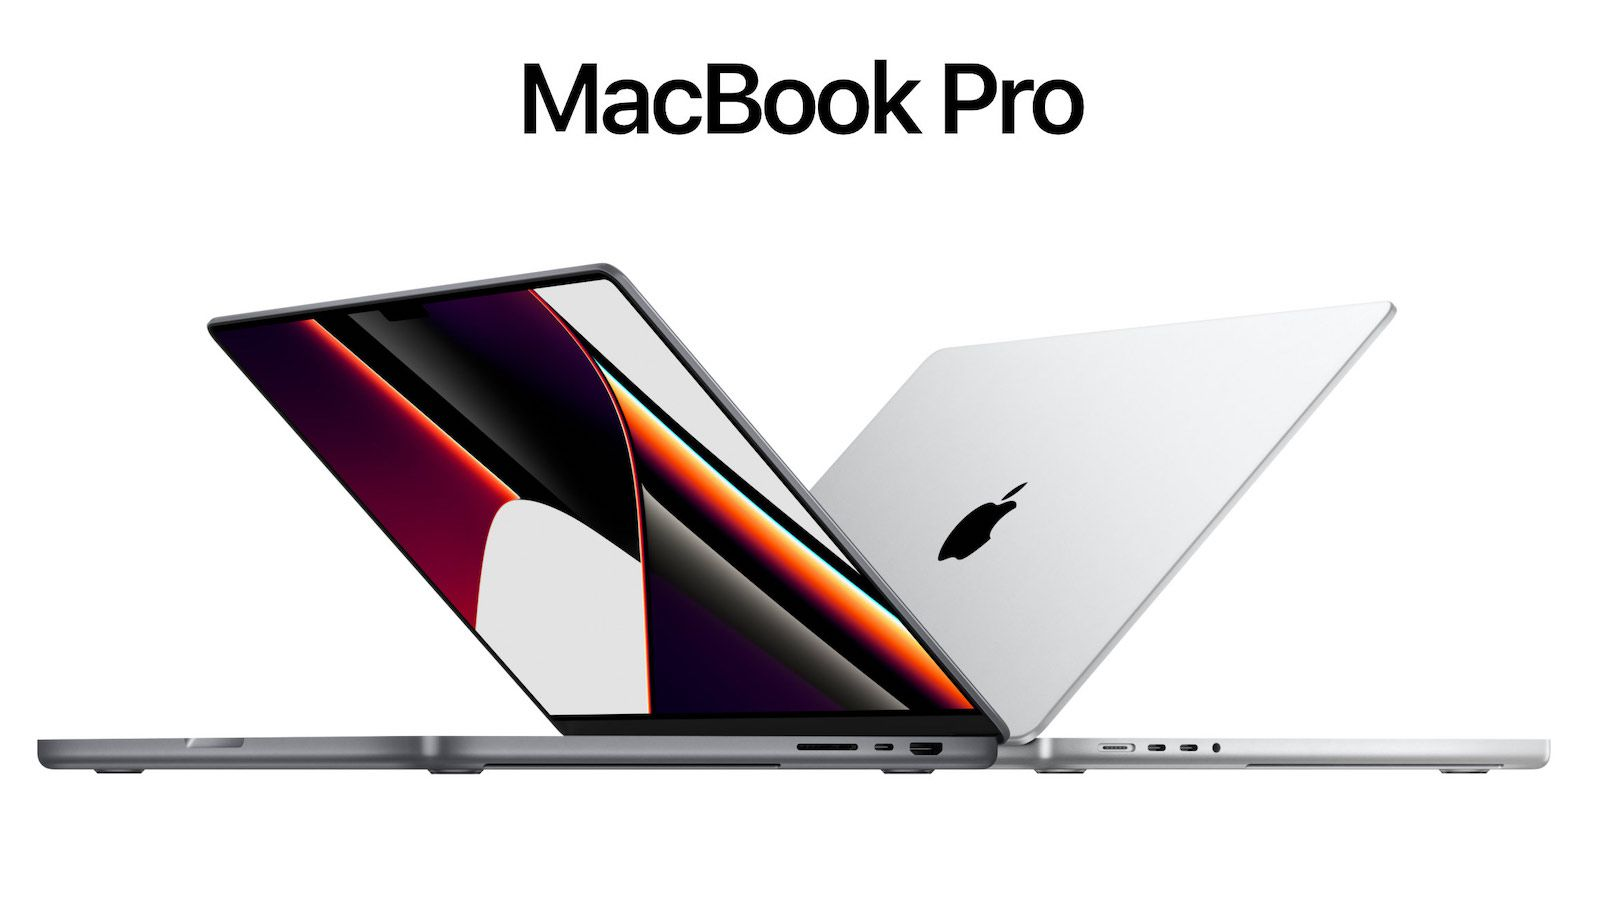 New MacBook Pro Tidbits: SD Card Speeds Limited to 250 MB/s, Peak Brightness for SD Content, eGPUs Still Not Supported,…